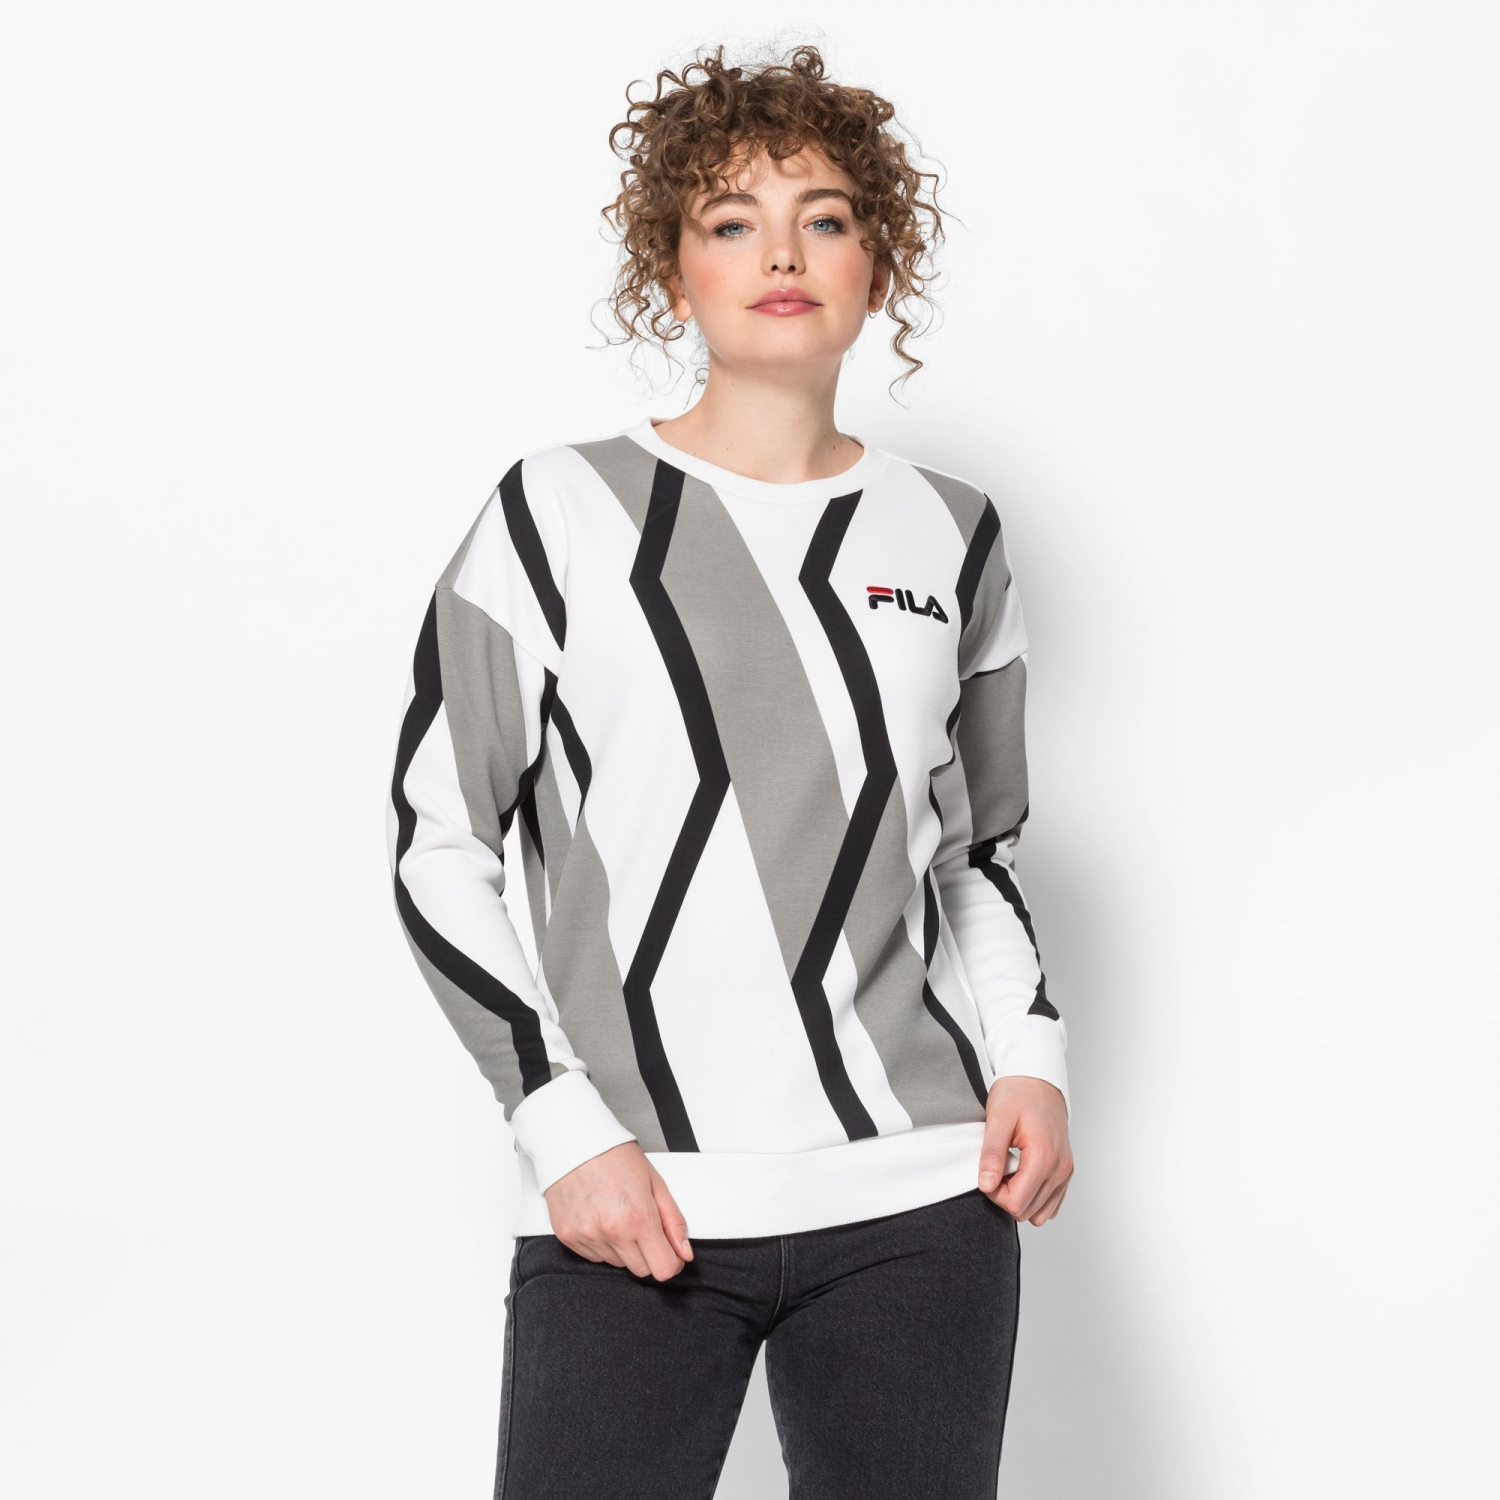 Fila Waverly Prinked Crew Sweat Bild 1